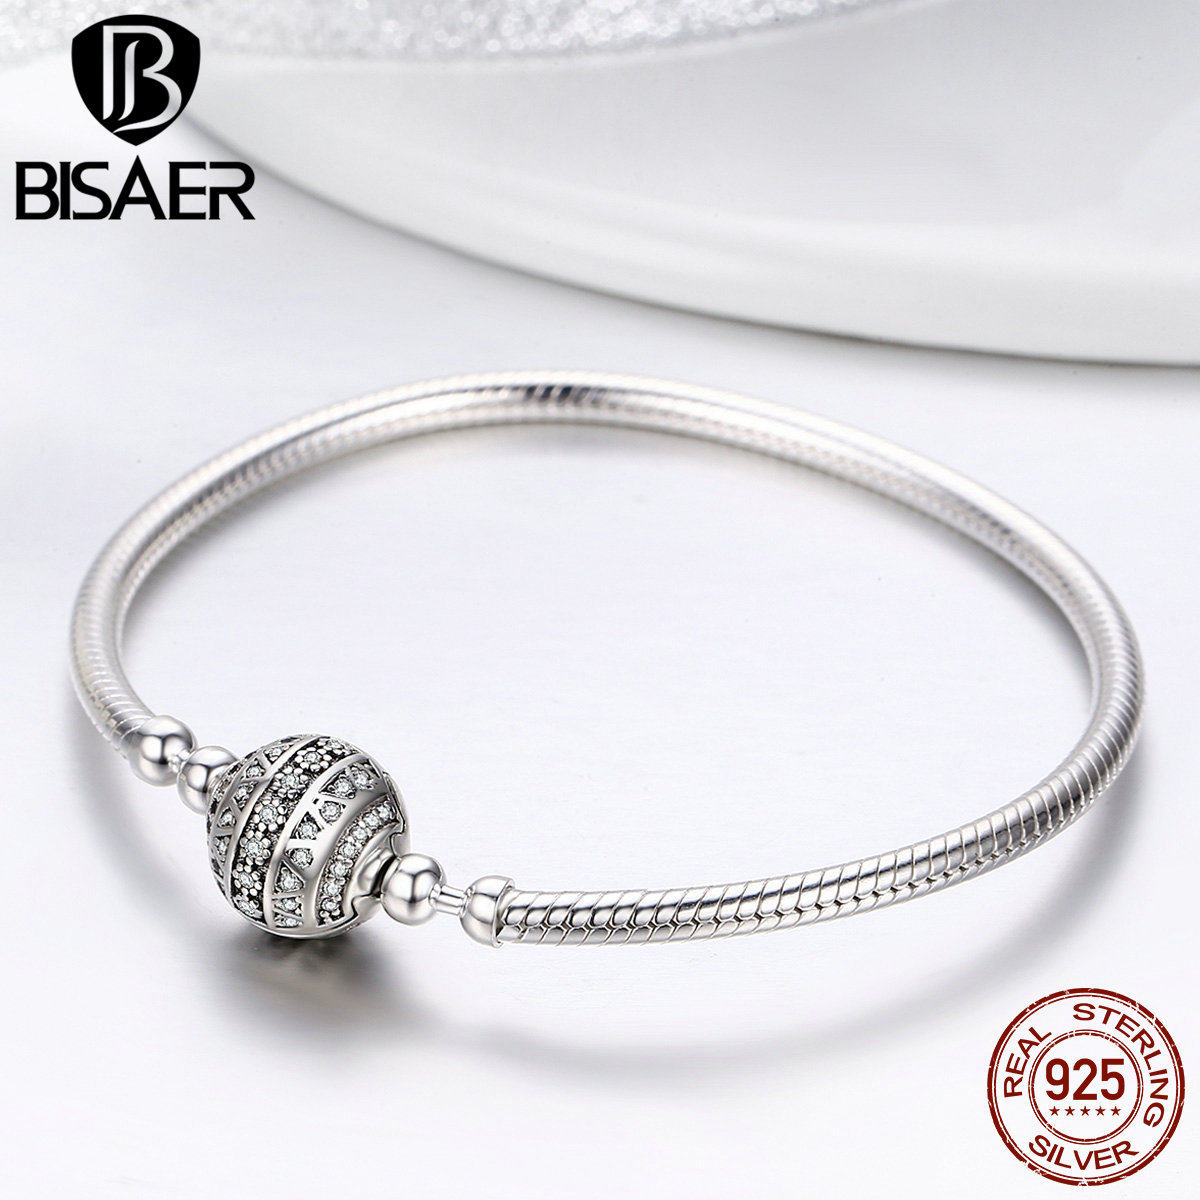 2018 New Arrival 100% 925 Sterling Silver Delicate Life Basic Chain Charm Bracelet for Women Fine Jewelry DIY Accessories Gift